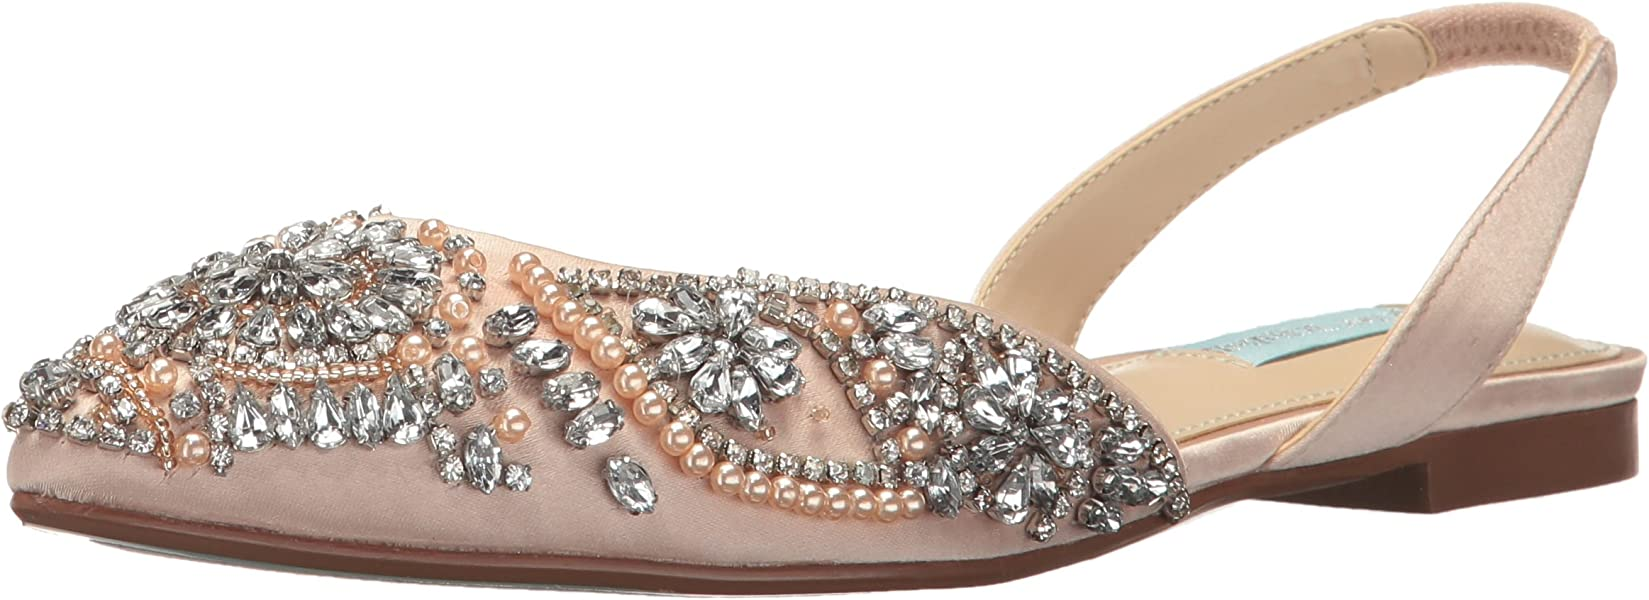 85cff1544f2 Blue by Betsey Johnson Women s Molly Champagne Satin 5 ...